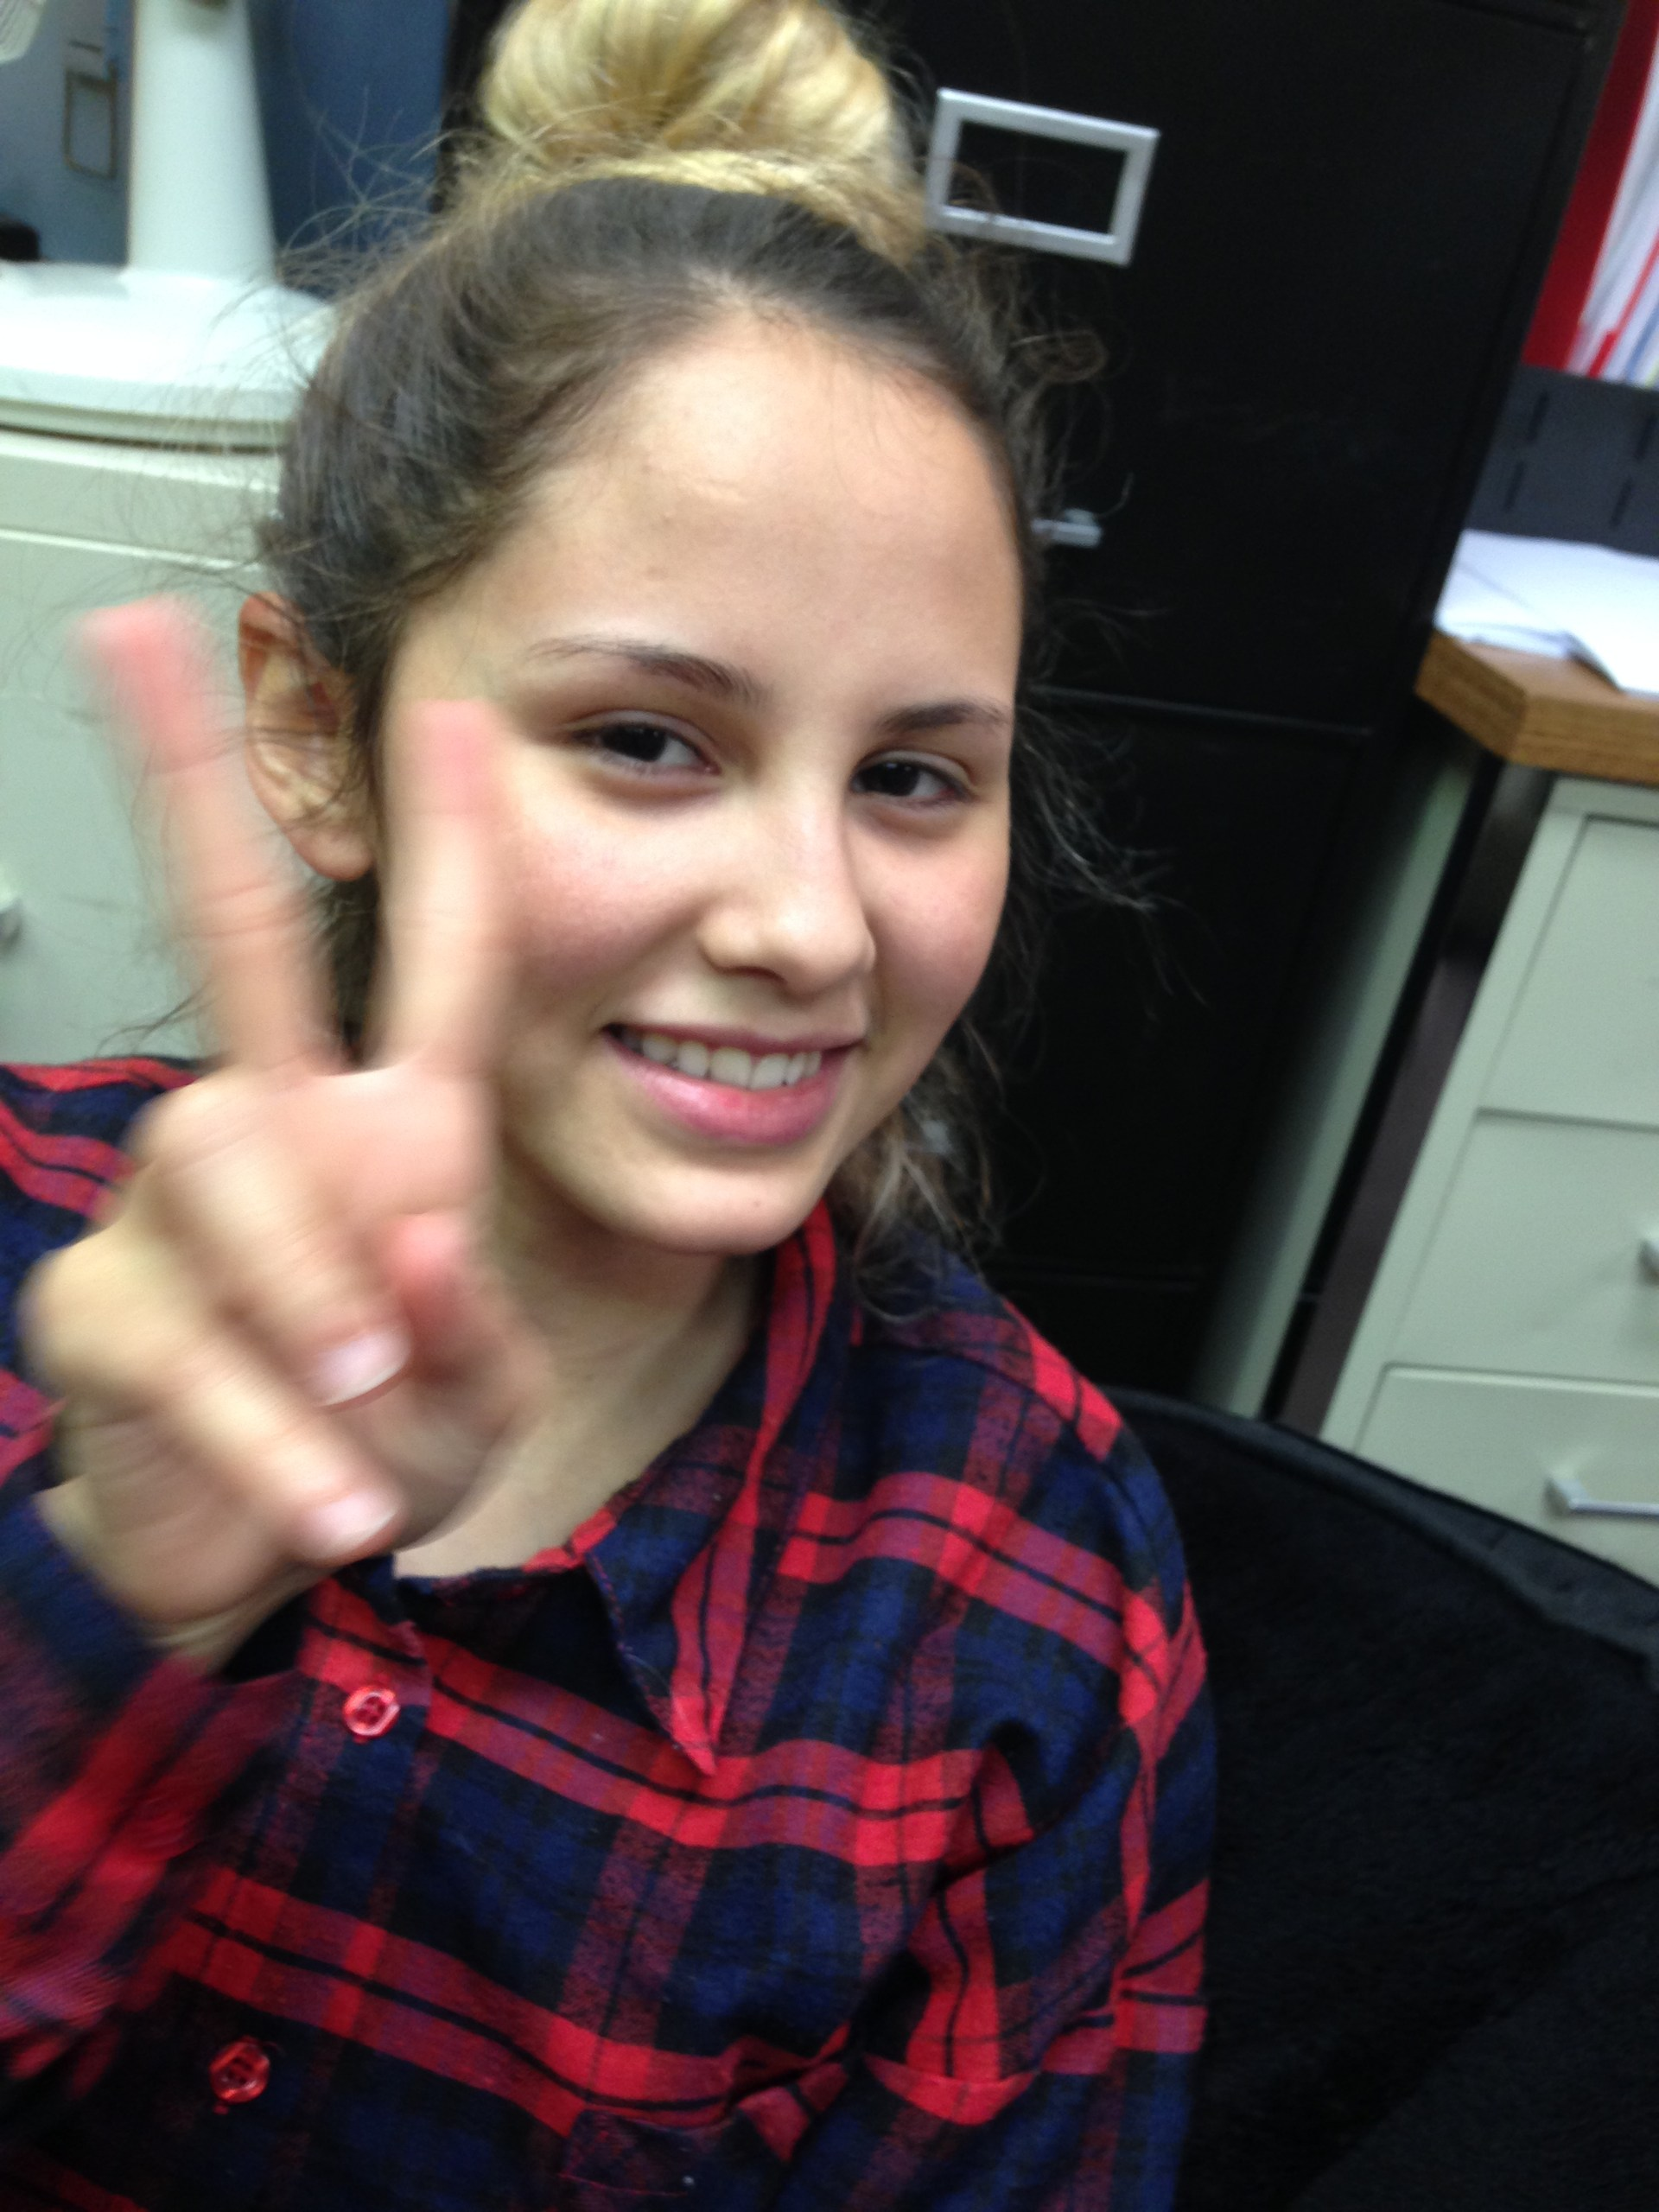 Bianca making a peace sign.